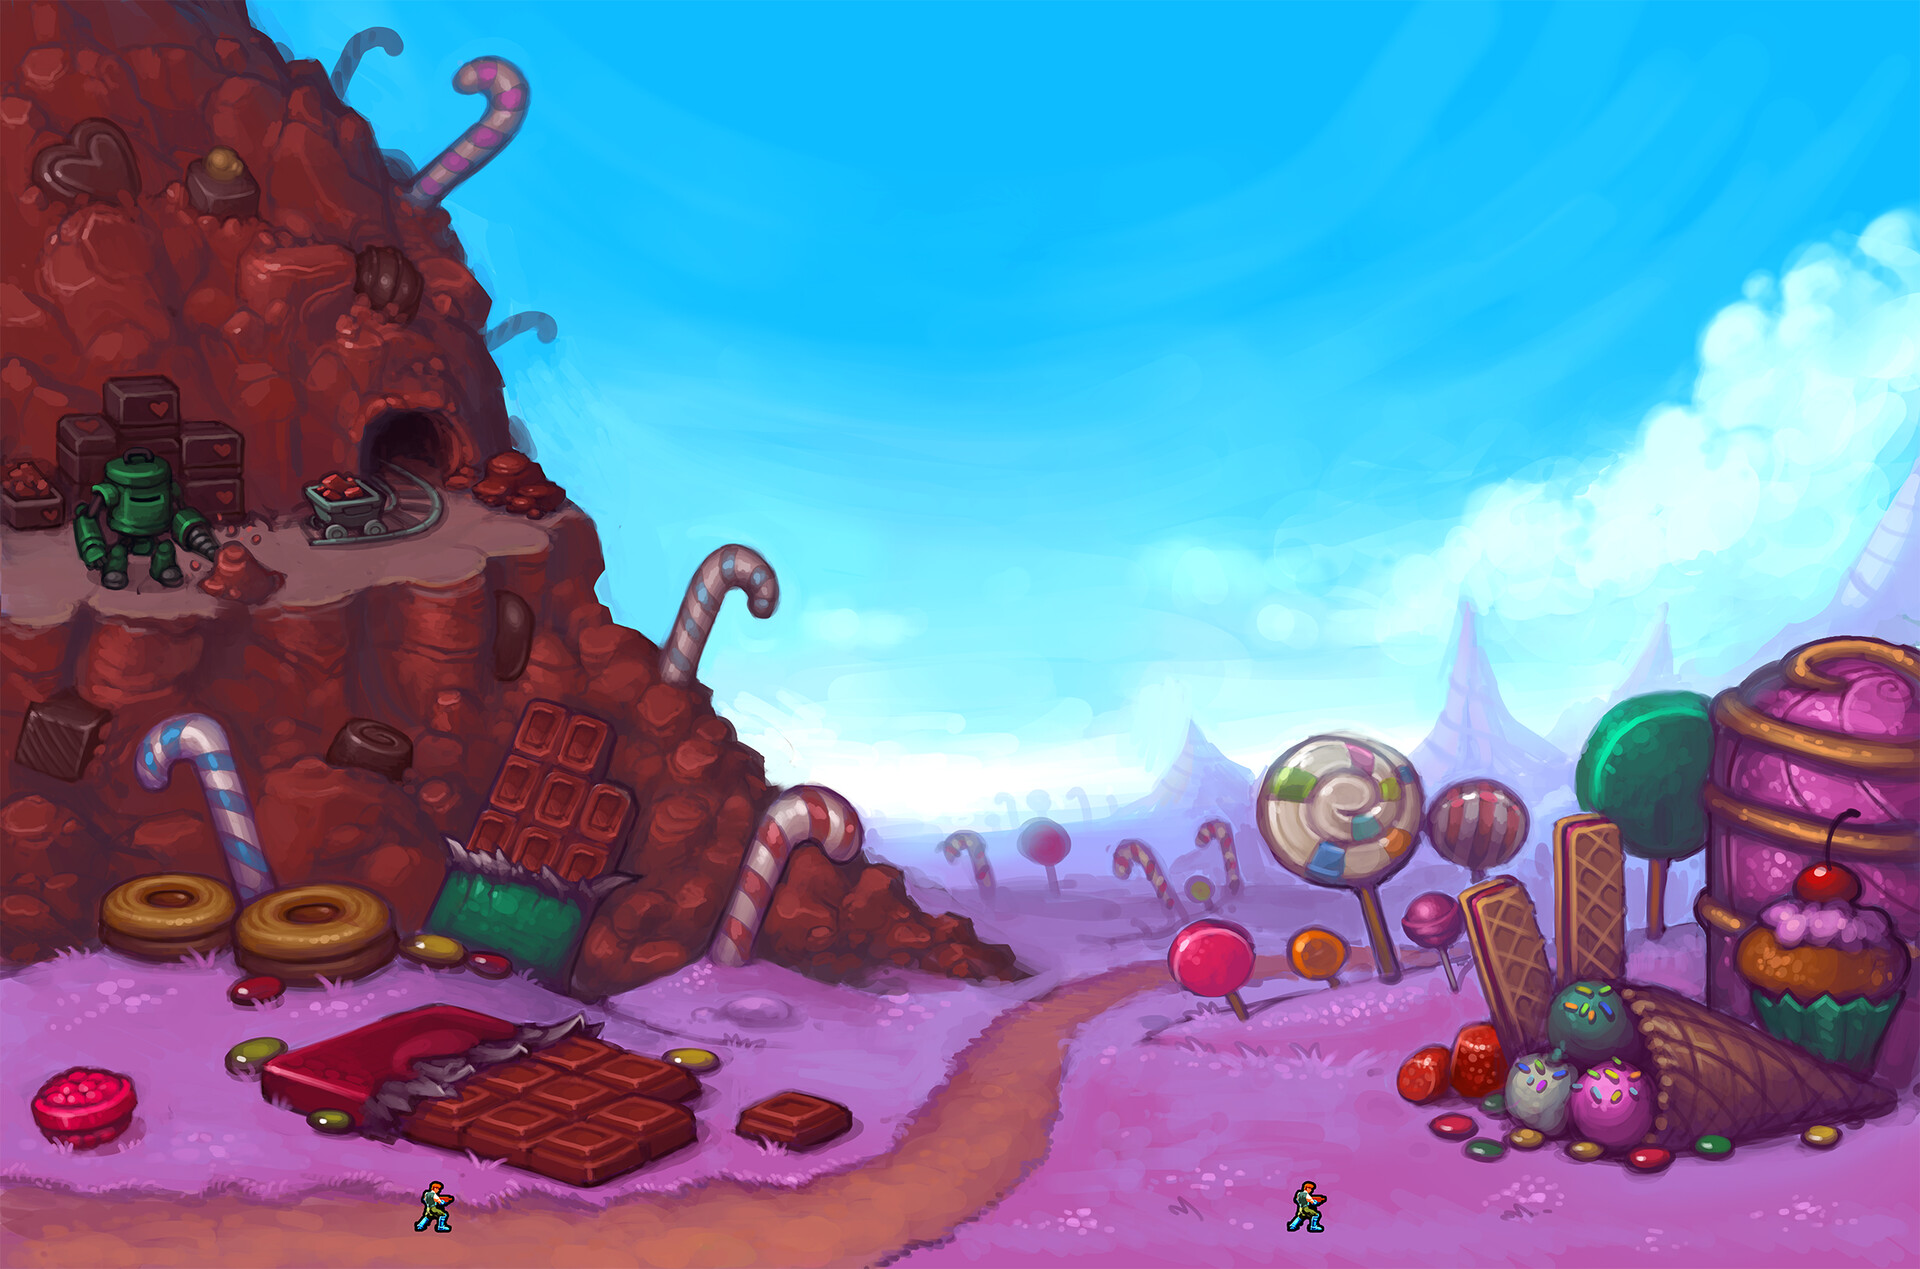 Every game needs a candy-land!